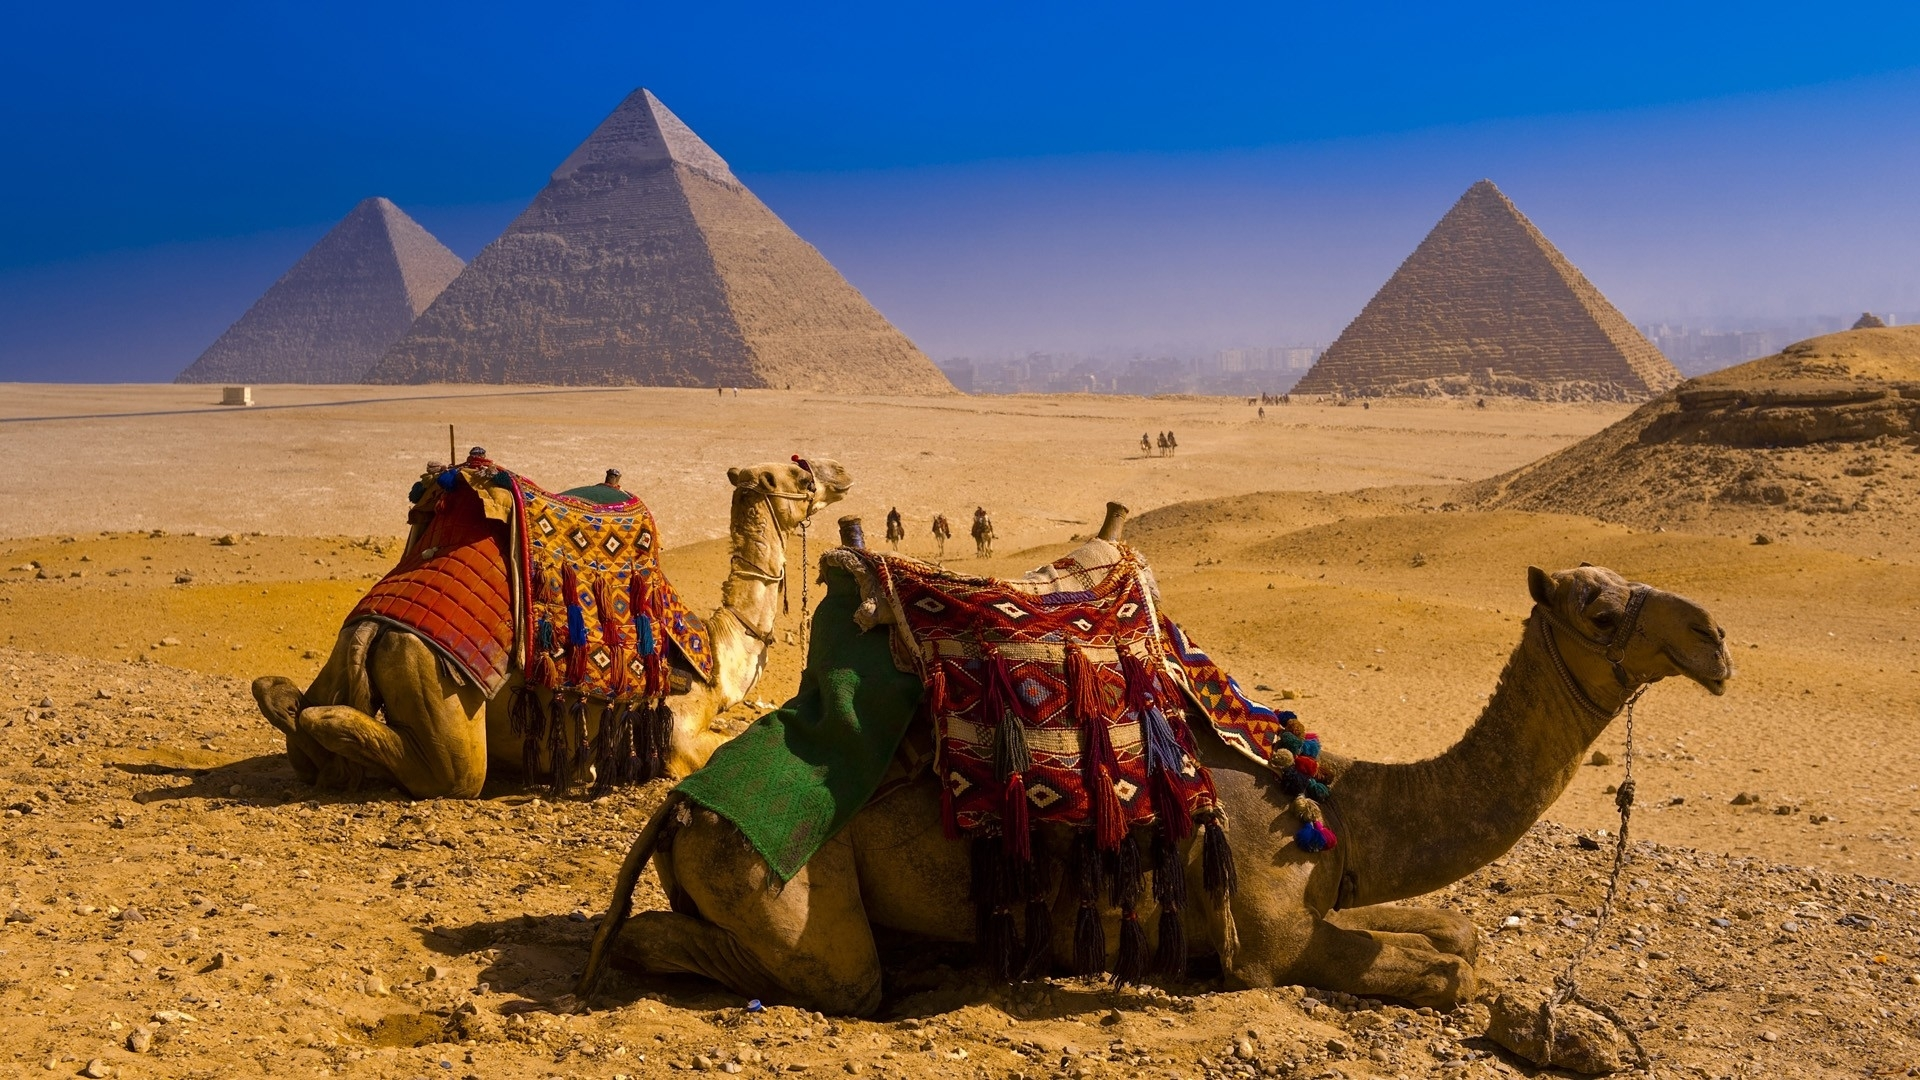 egypt new photos